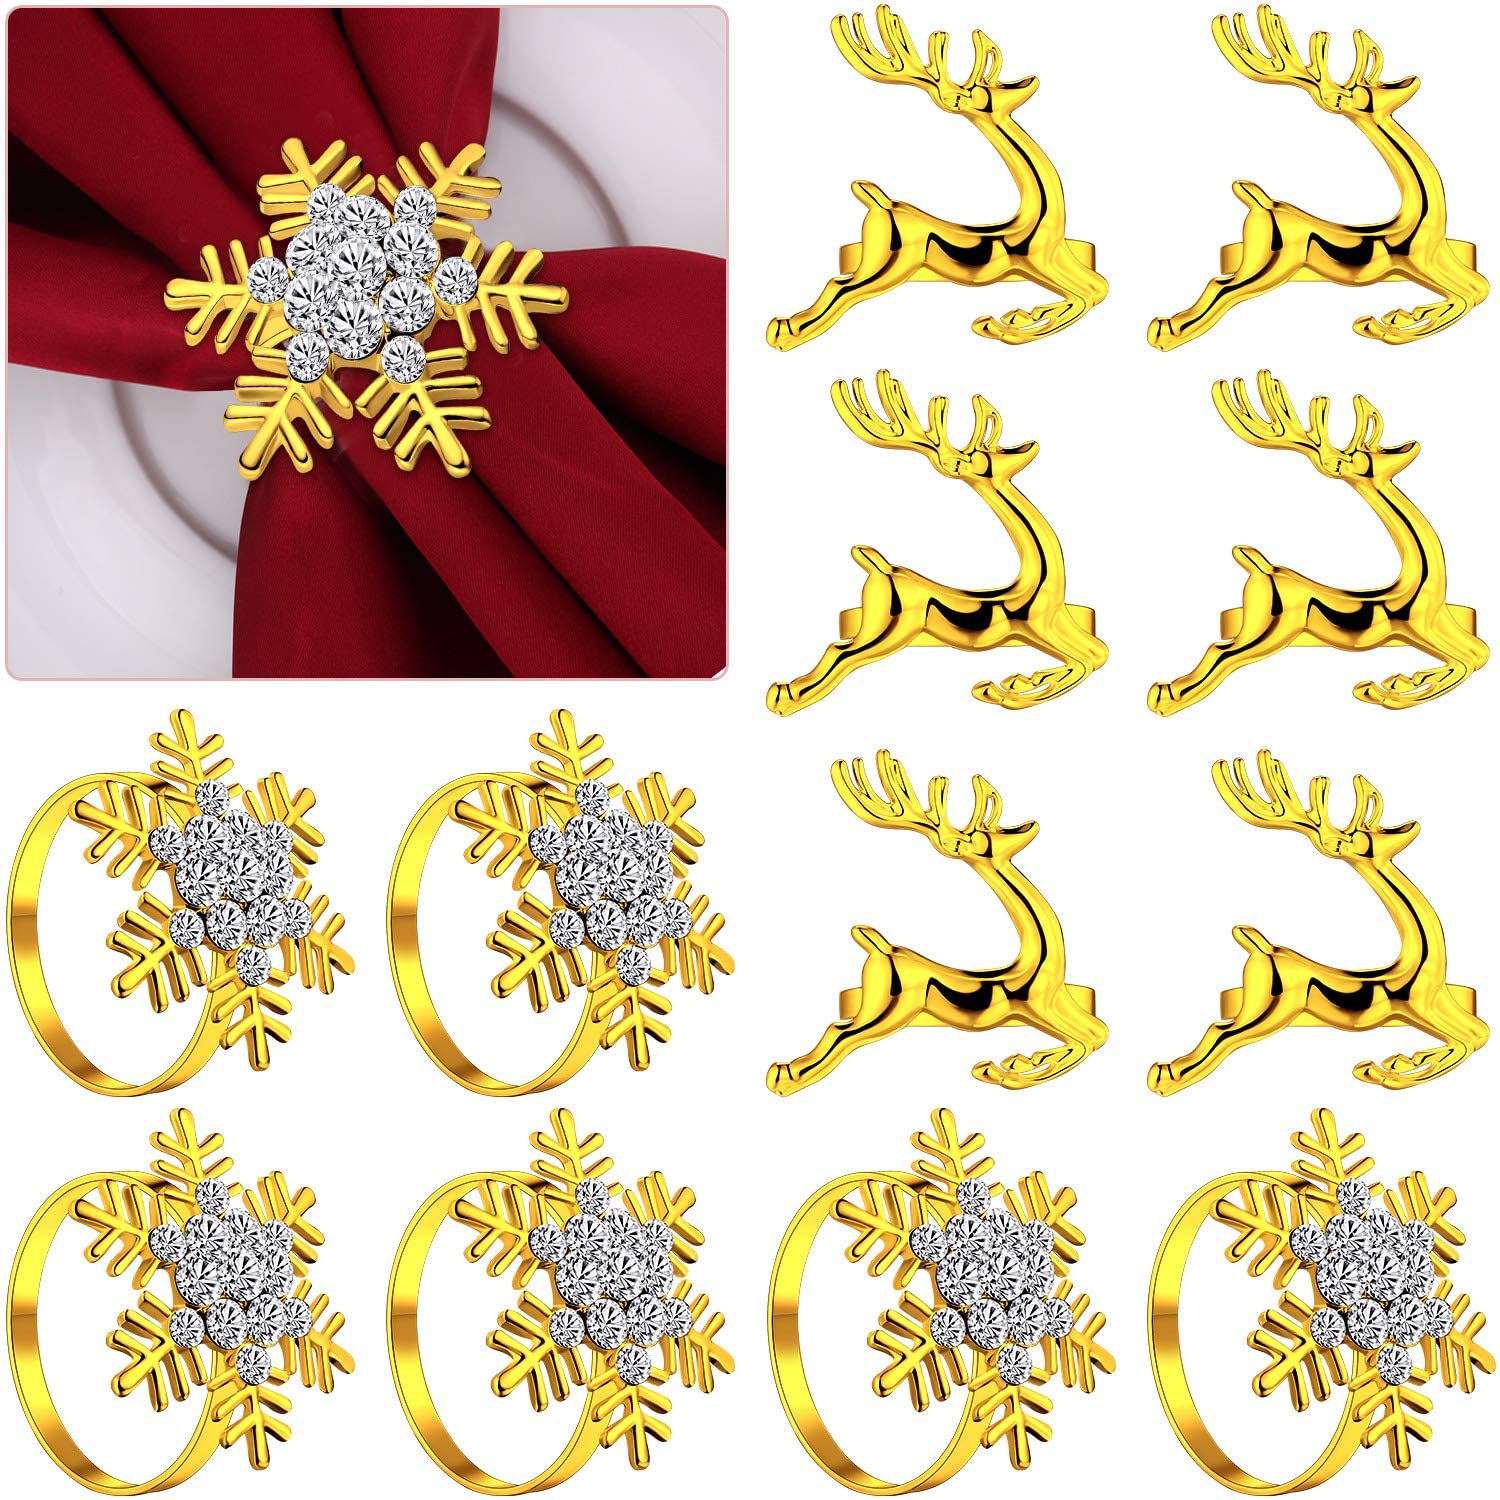 12 Pieces Christmas Napkin Rings Set, 6 Pieces Elk Chic Napkin Rings and 6 Pieces Rhinestone Snowflake Napkin Rings for Christmas Wedding Birthday Party Supplies (Gold)